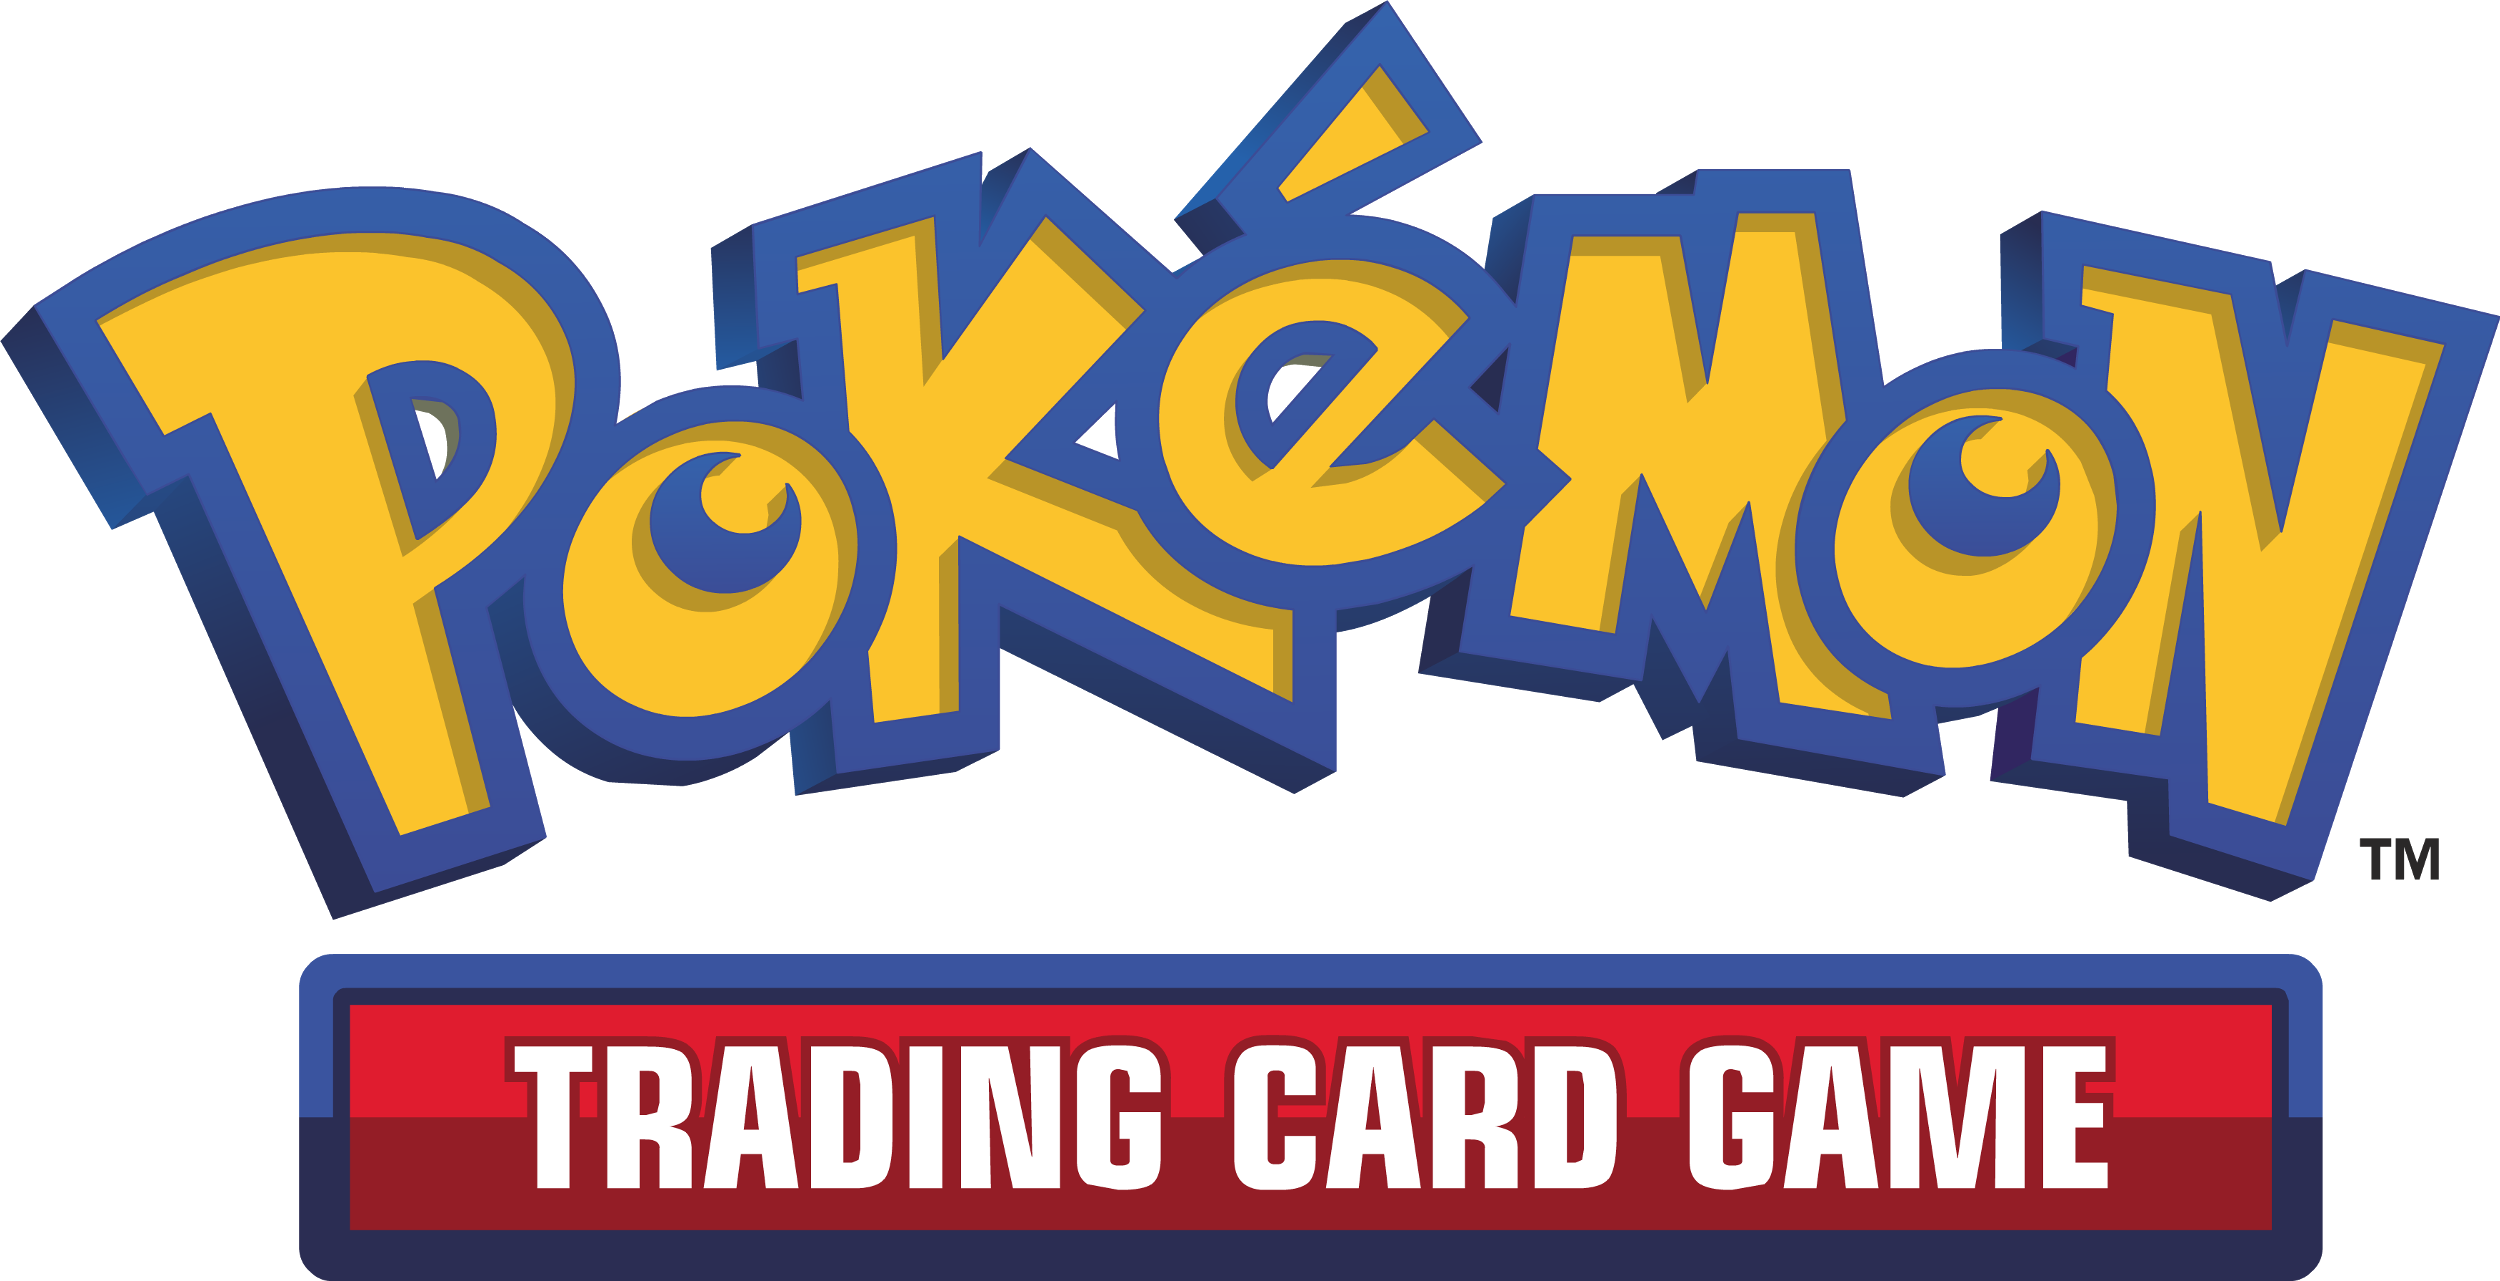 http://img1.wikia.nocookie.net/__cb20110218003113/pokemon/images/f/fa/Pok%C3%A9mon_Trading_Card_Game.png